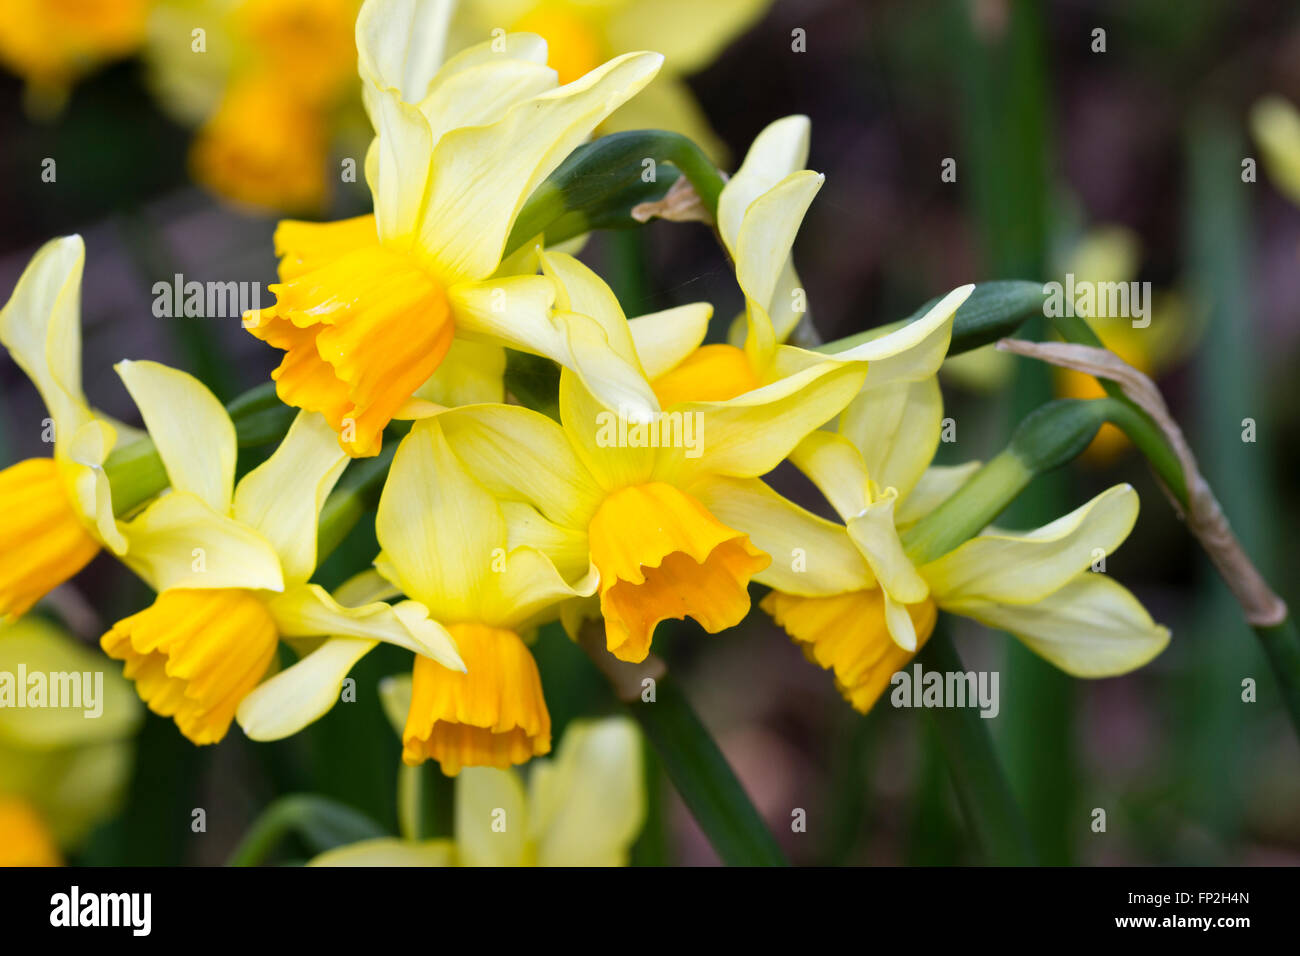 Flower song stock photos flower song stock images alamy early flowering the orange corolla and pale sepals of narcissus eaton song are mightylinksfo